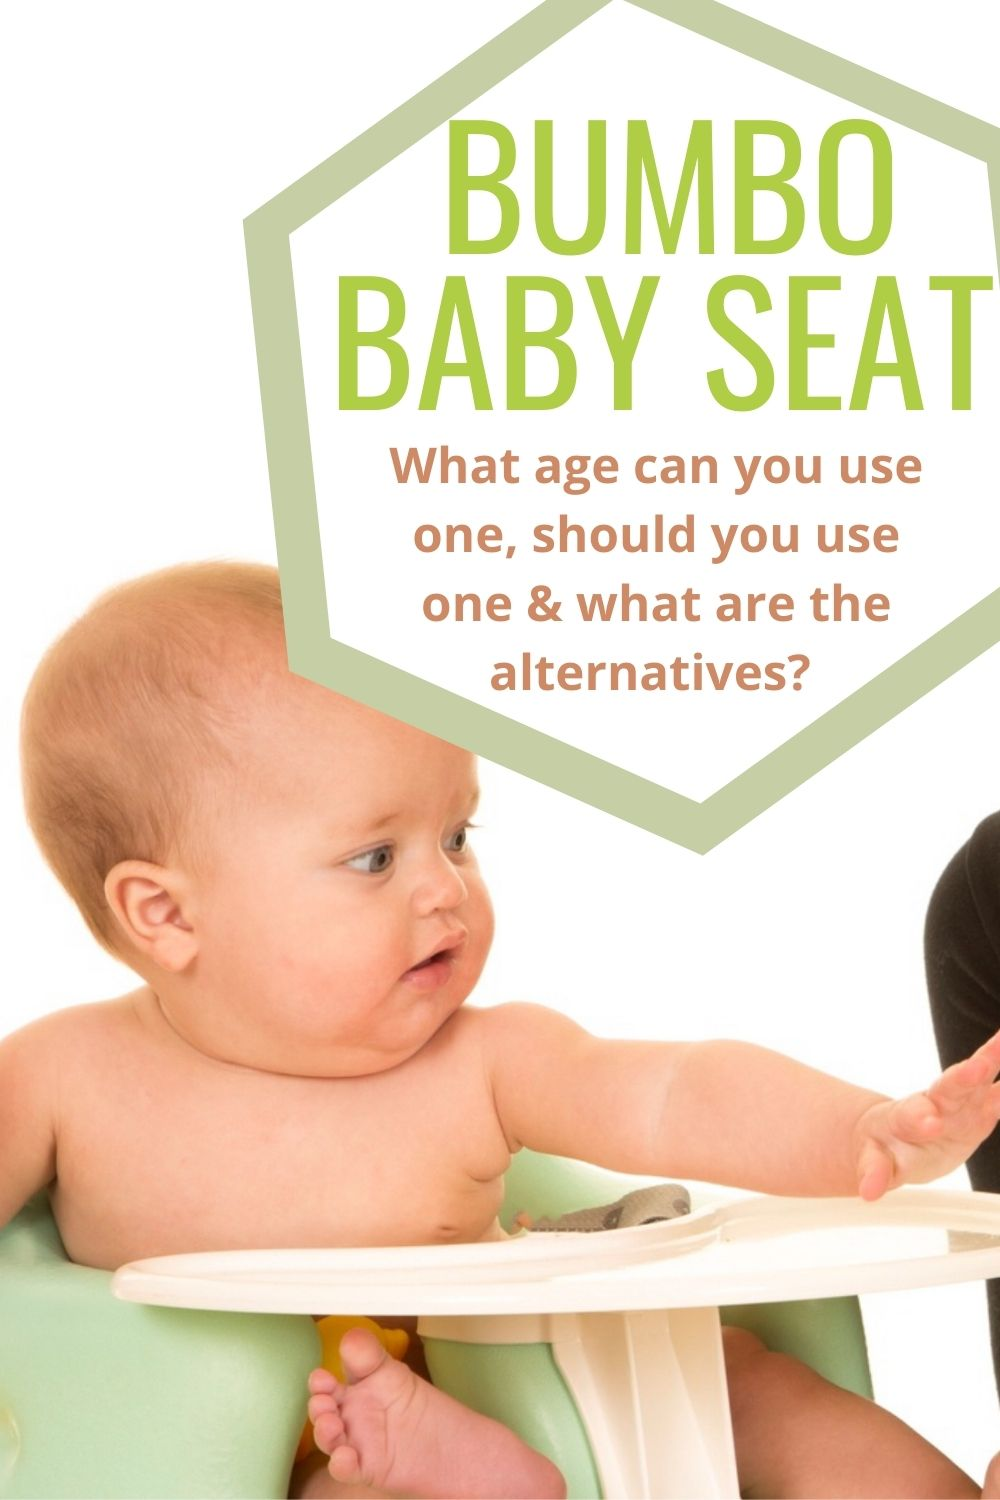 """Baby in a green Bumbo, text reads """"bumbo baby seat: what age can you use one, should use one and what are the alternatives"""